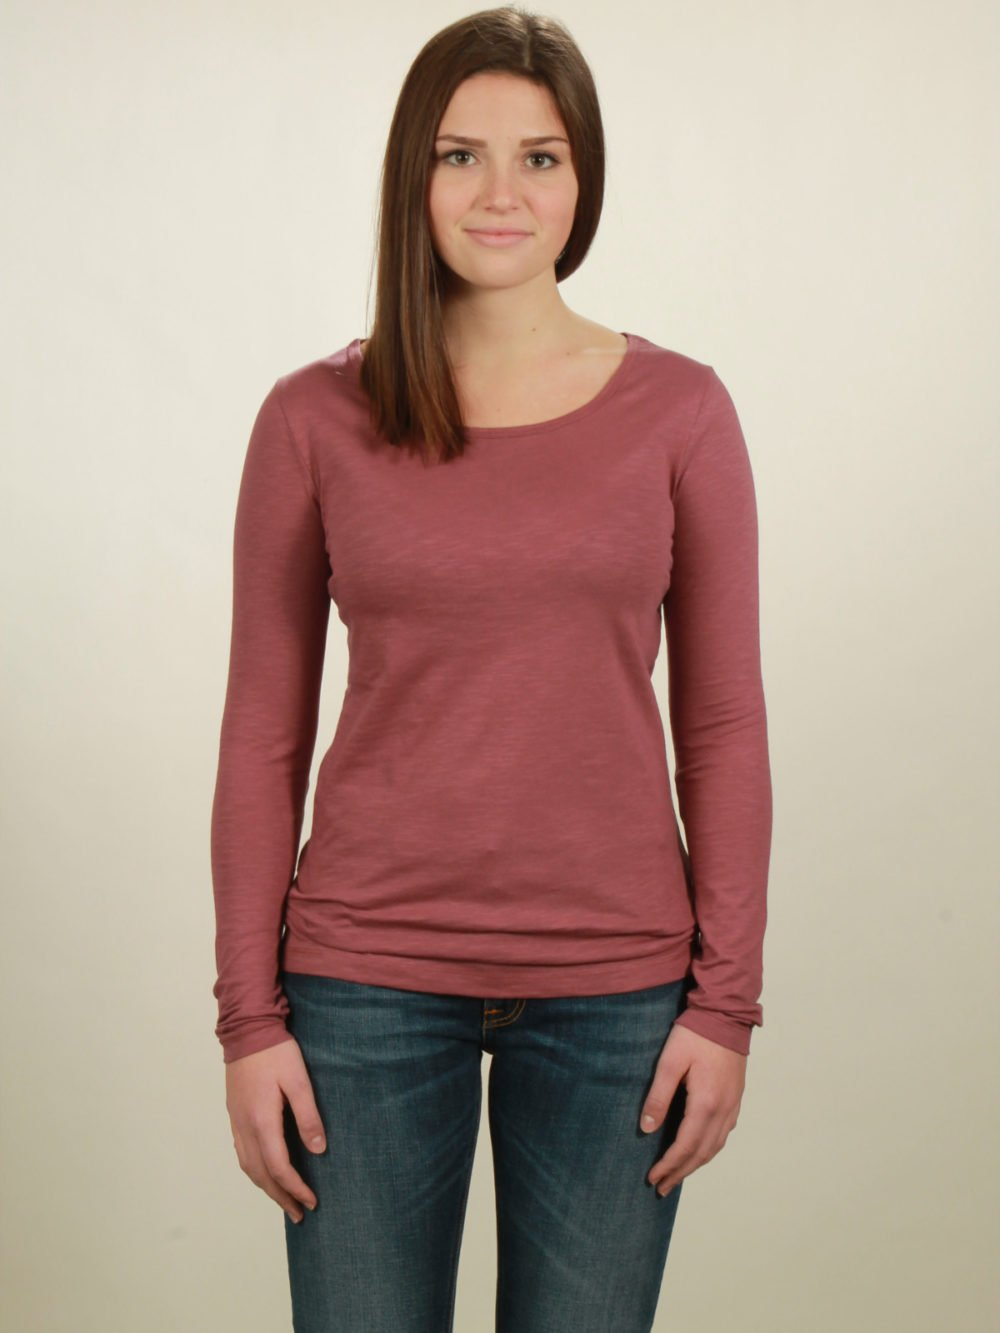 Damen-Longsleeve basic in berry, von NATIVE SOULS